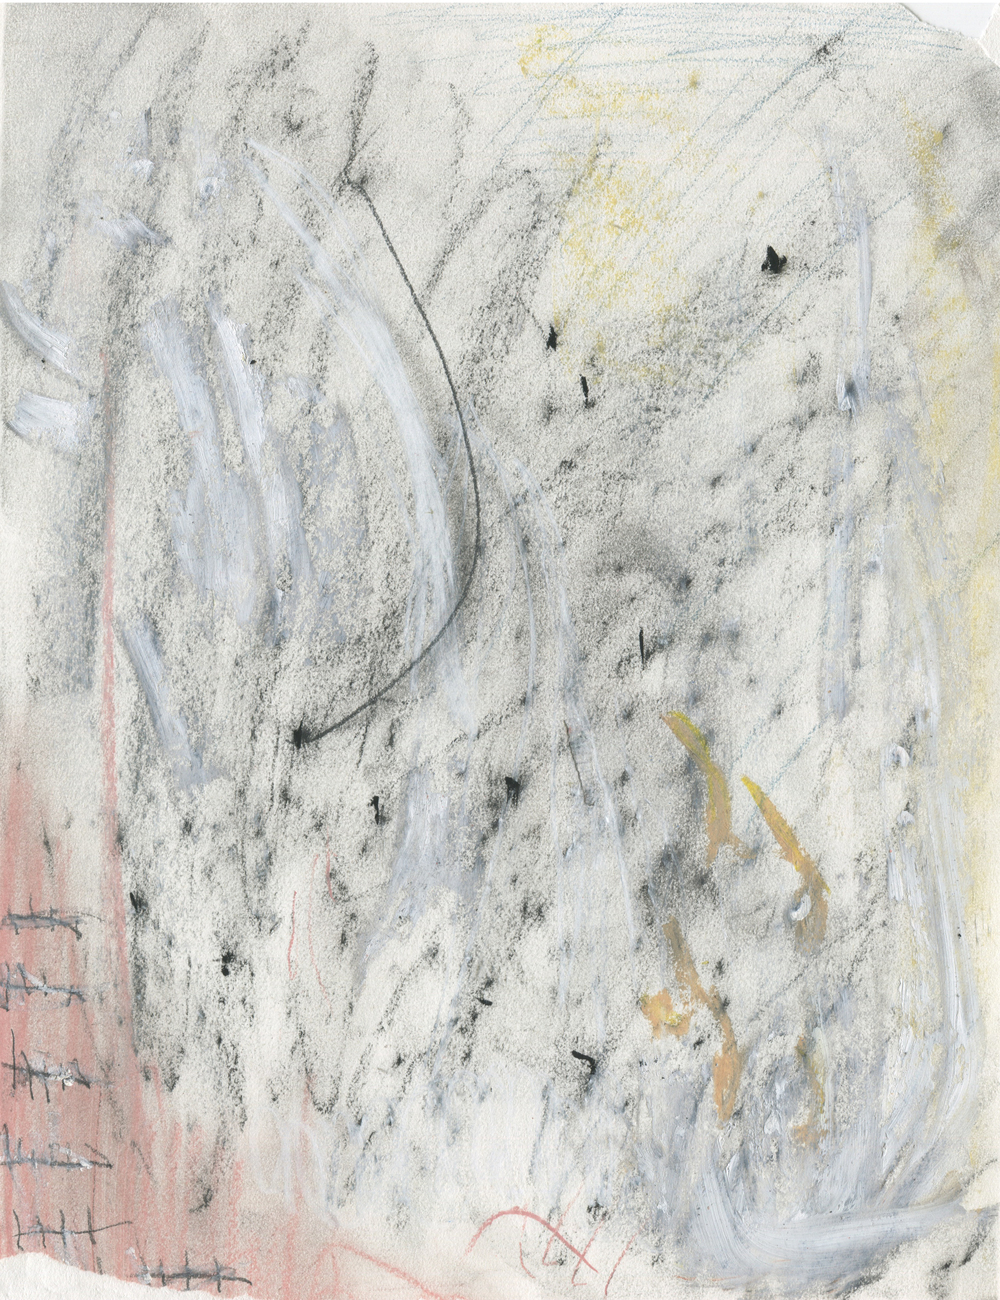 Oblivion, but Probably Not , 2016  Charcoal, Acrylic, Chalk Pastel, Graphite, and Oil Pastel on Paper